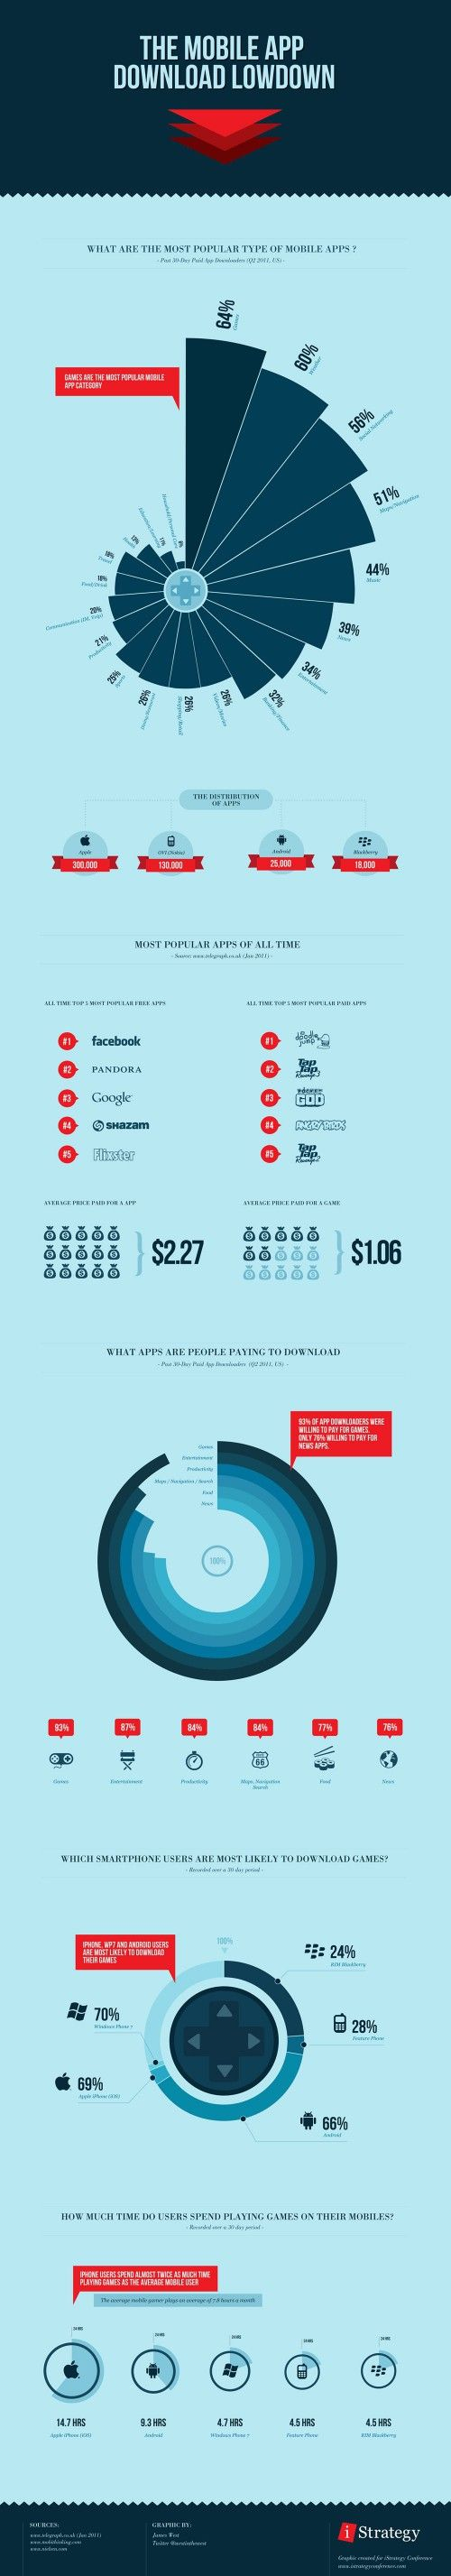 The mobile app download lowdown infography